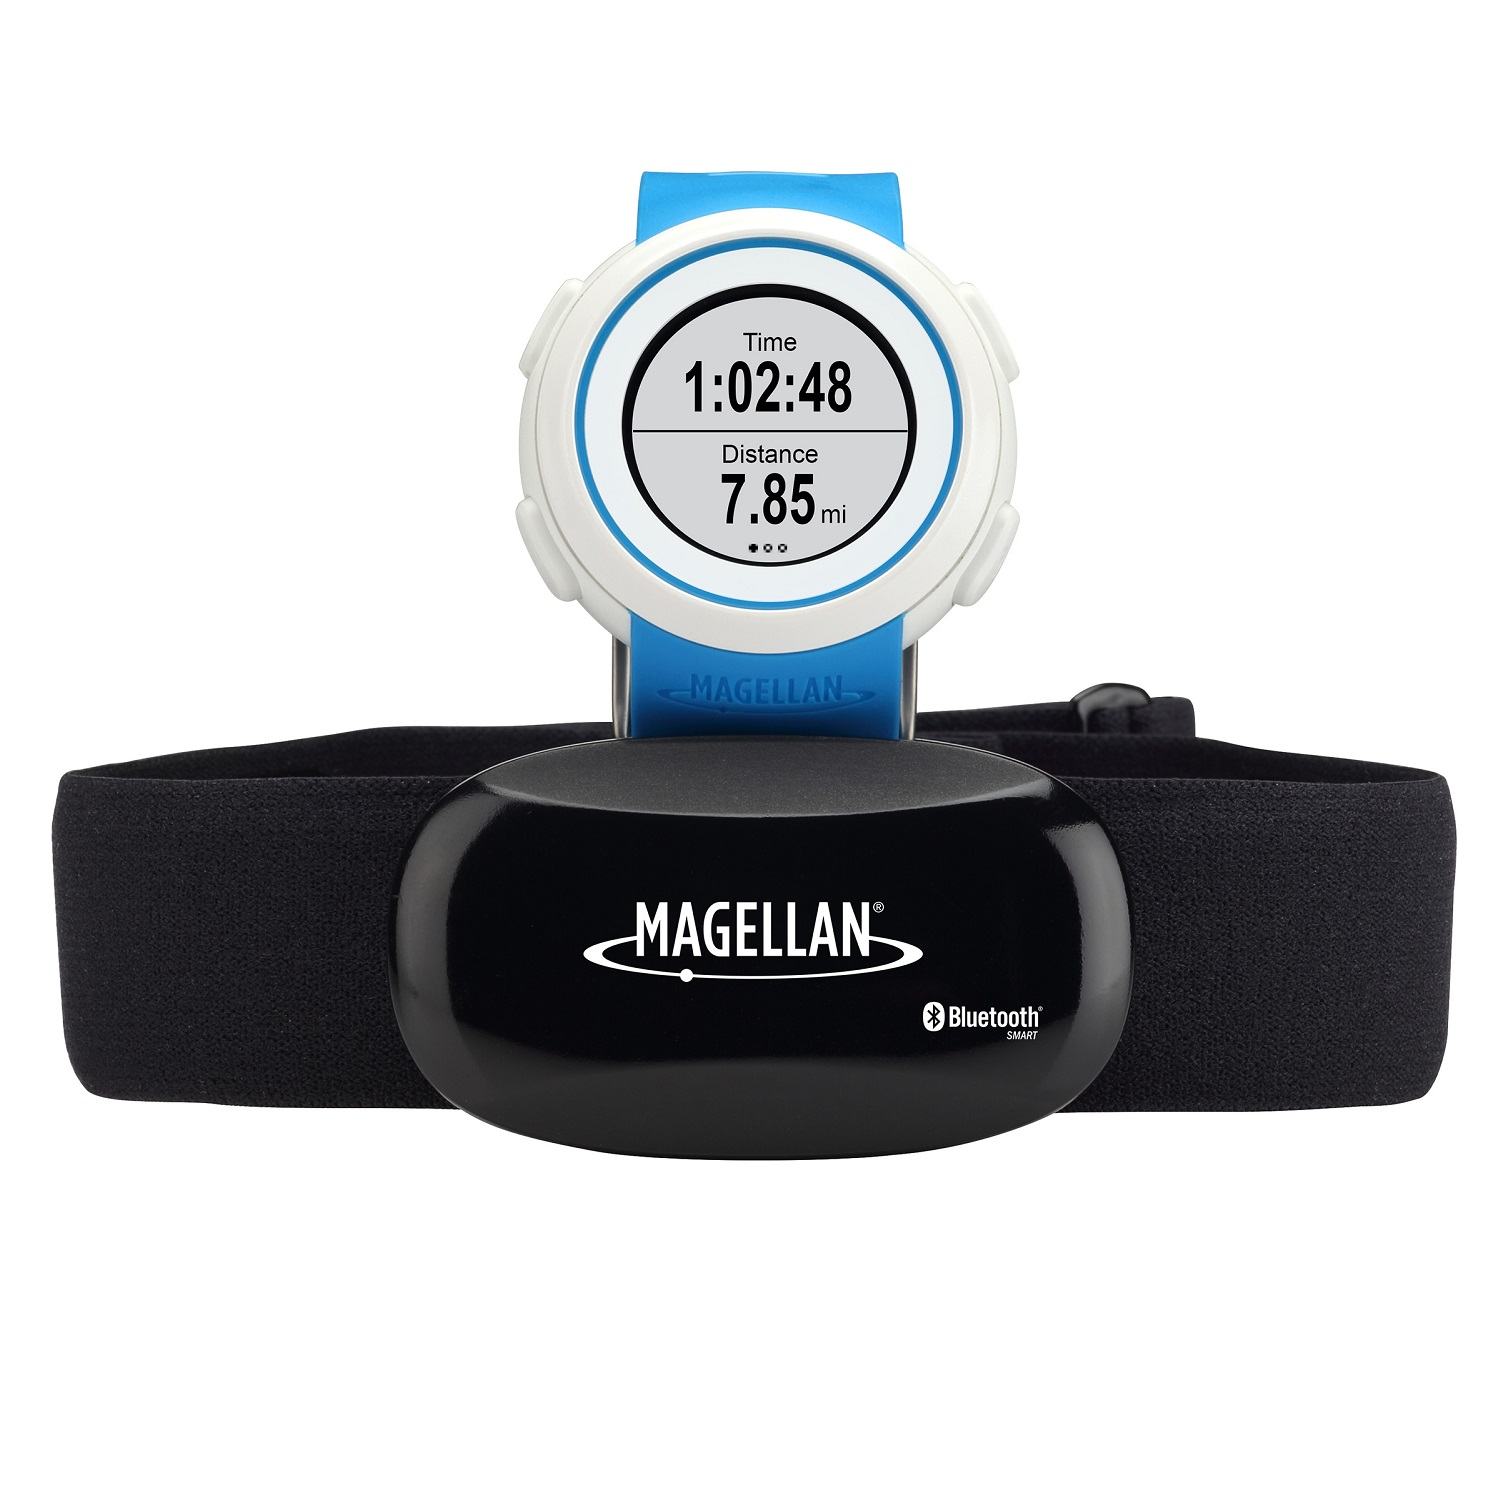 Magellan echo fit sports watch with heart rate monitor blue for Magellan fishing shirts wholesale